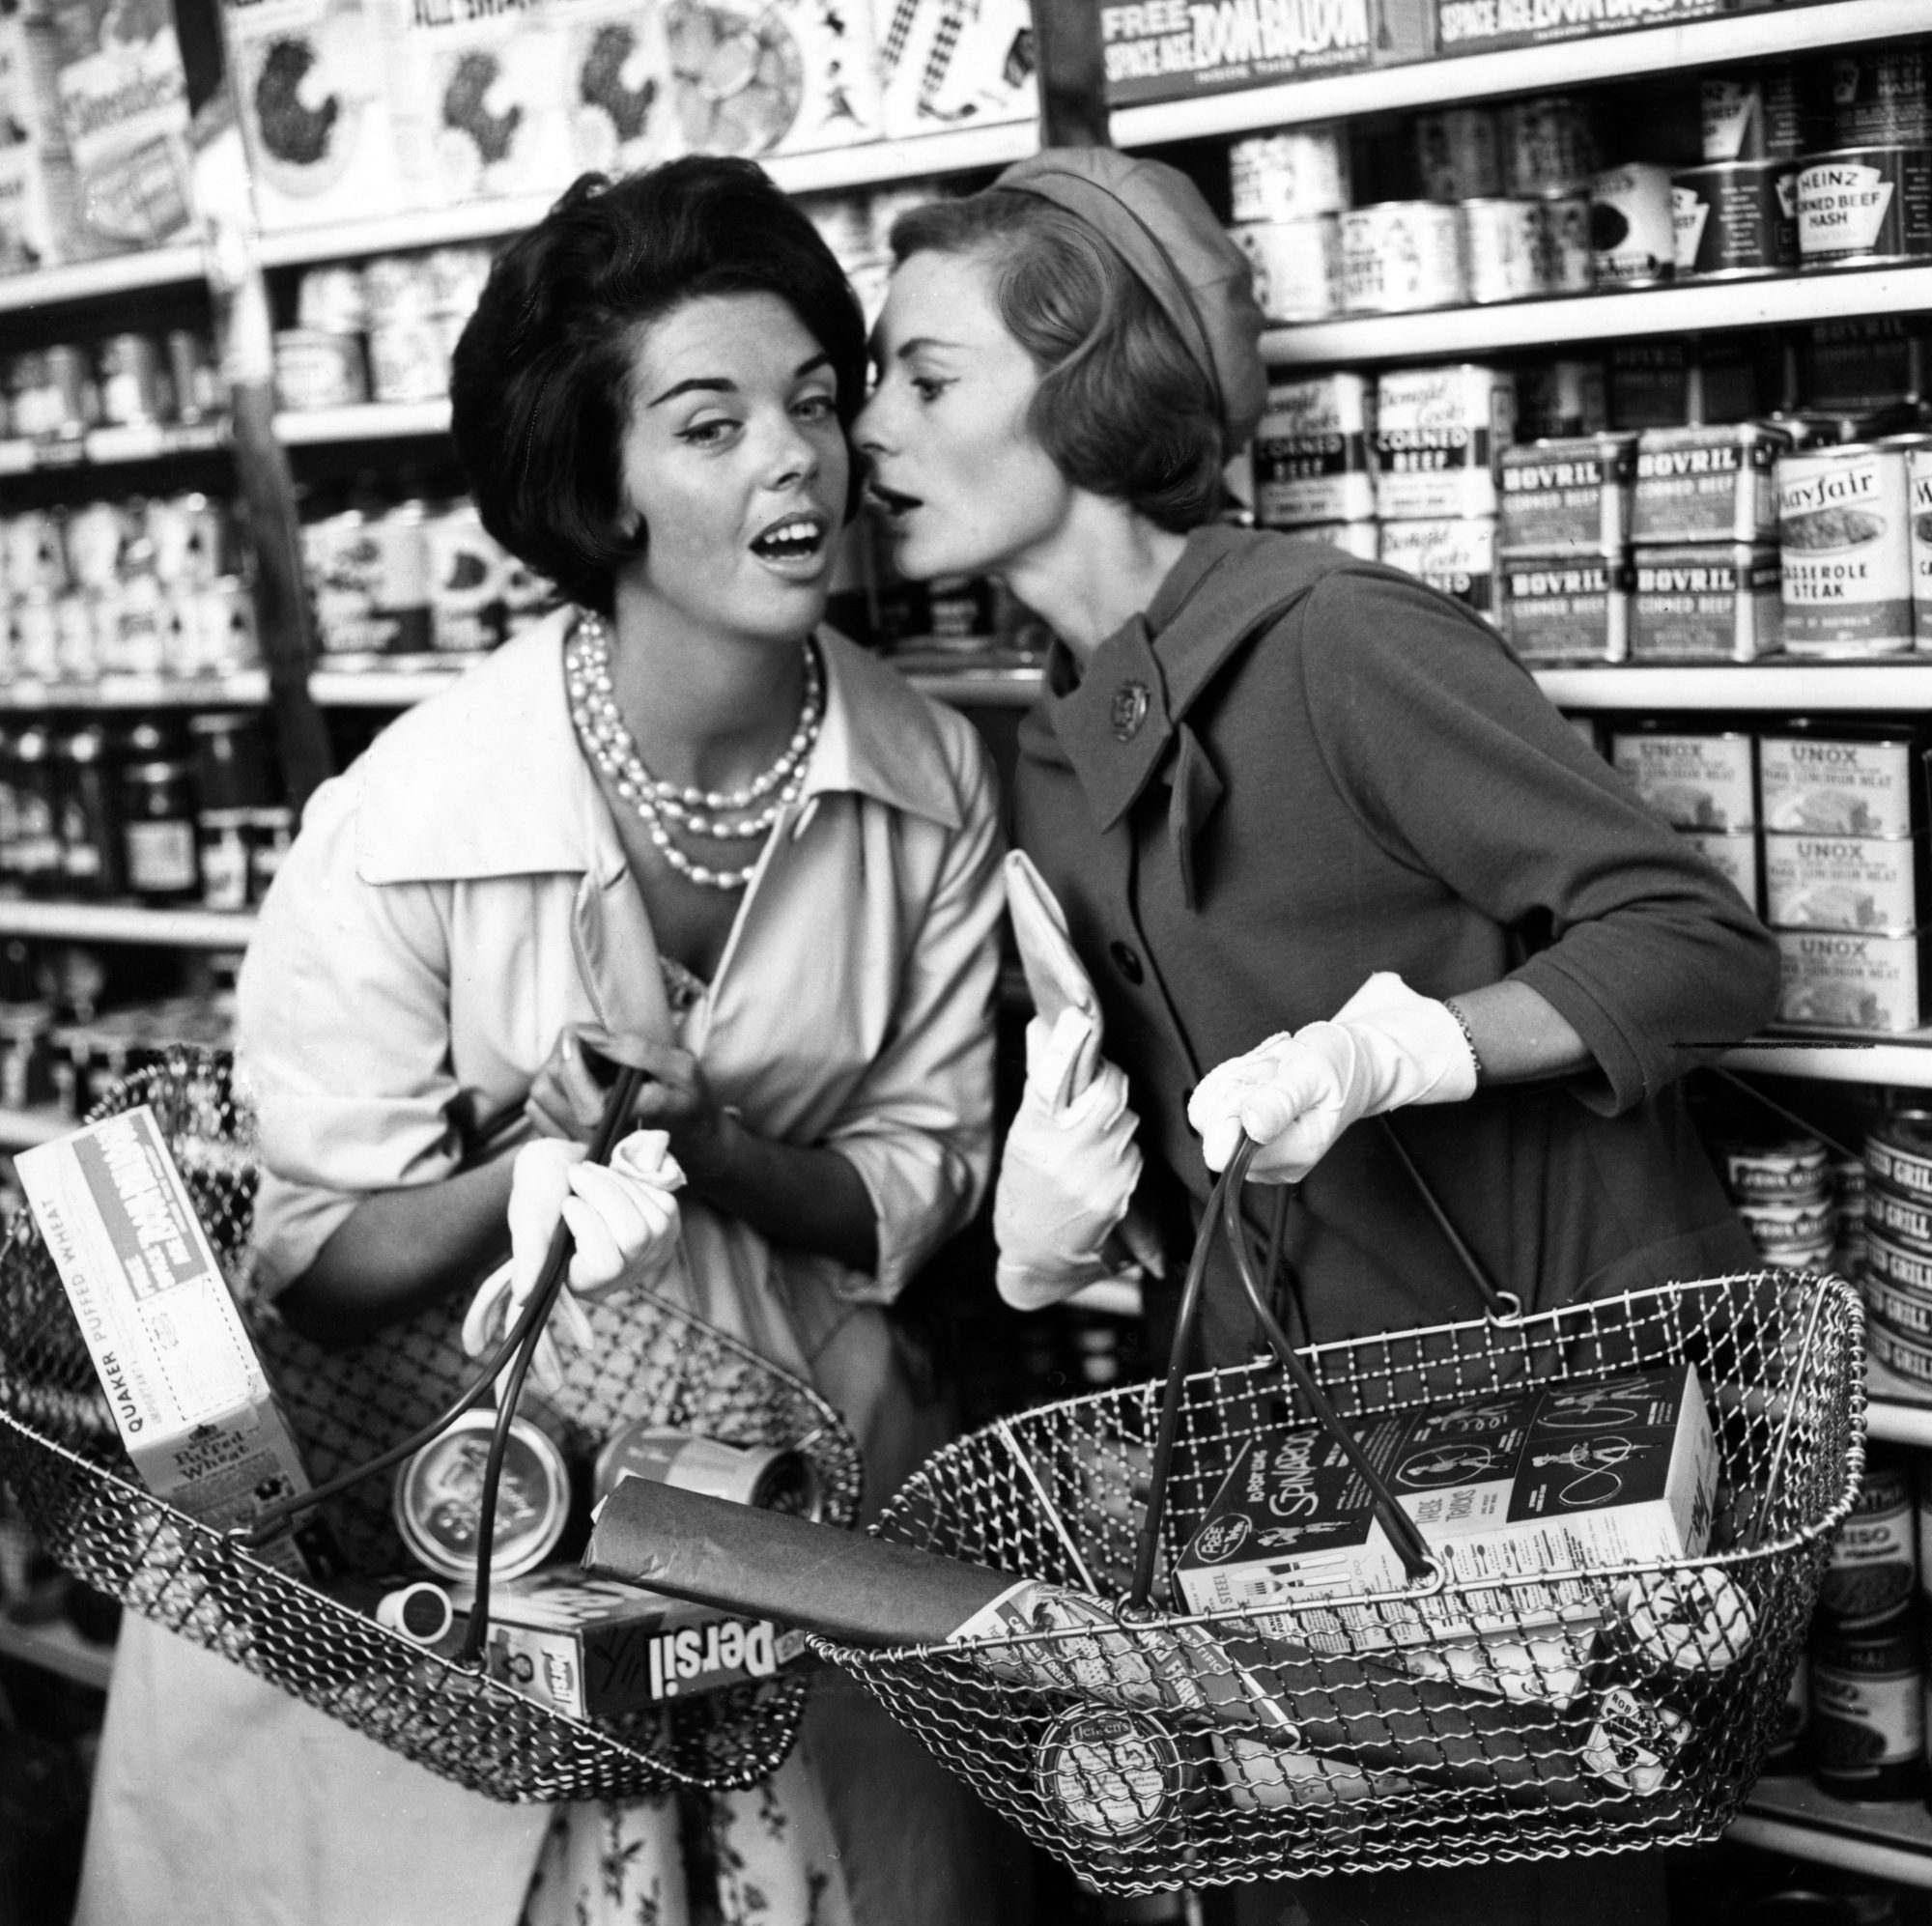 women gossiping in supermarket